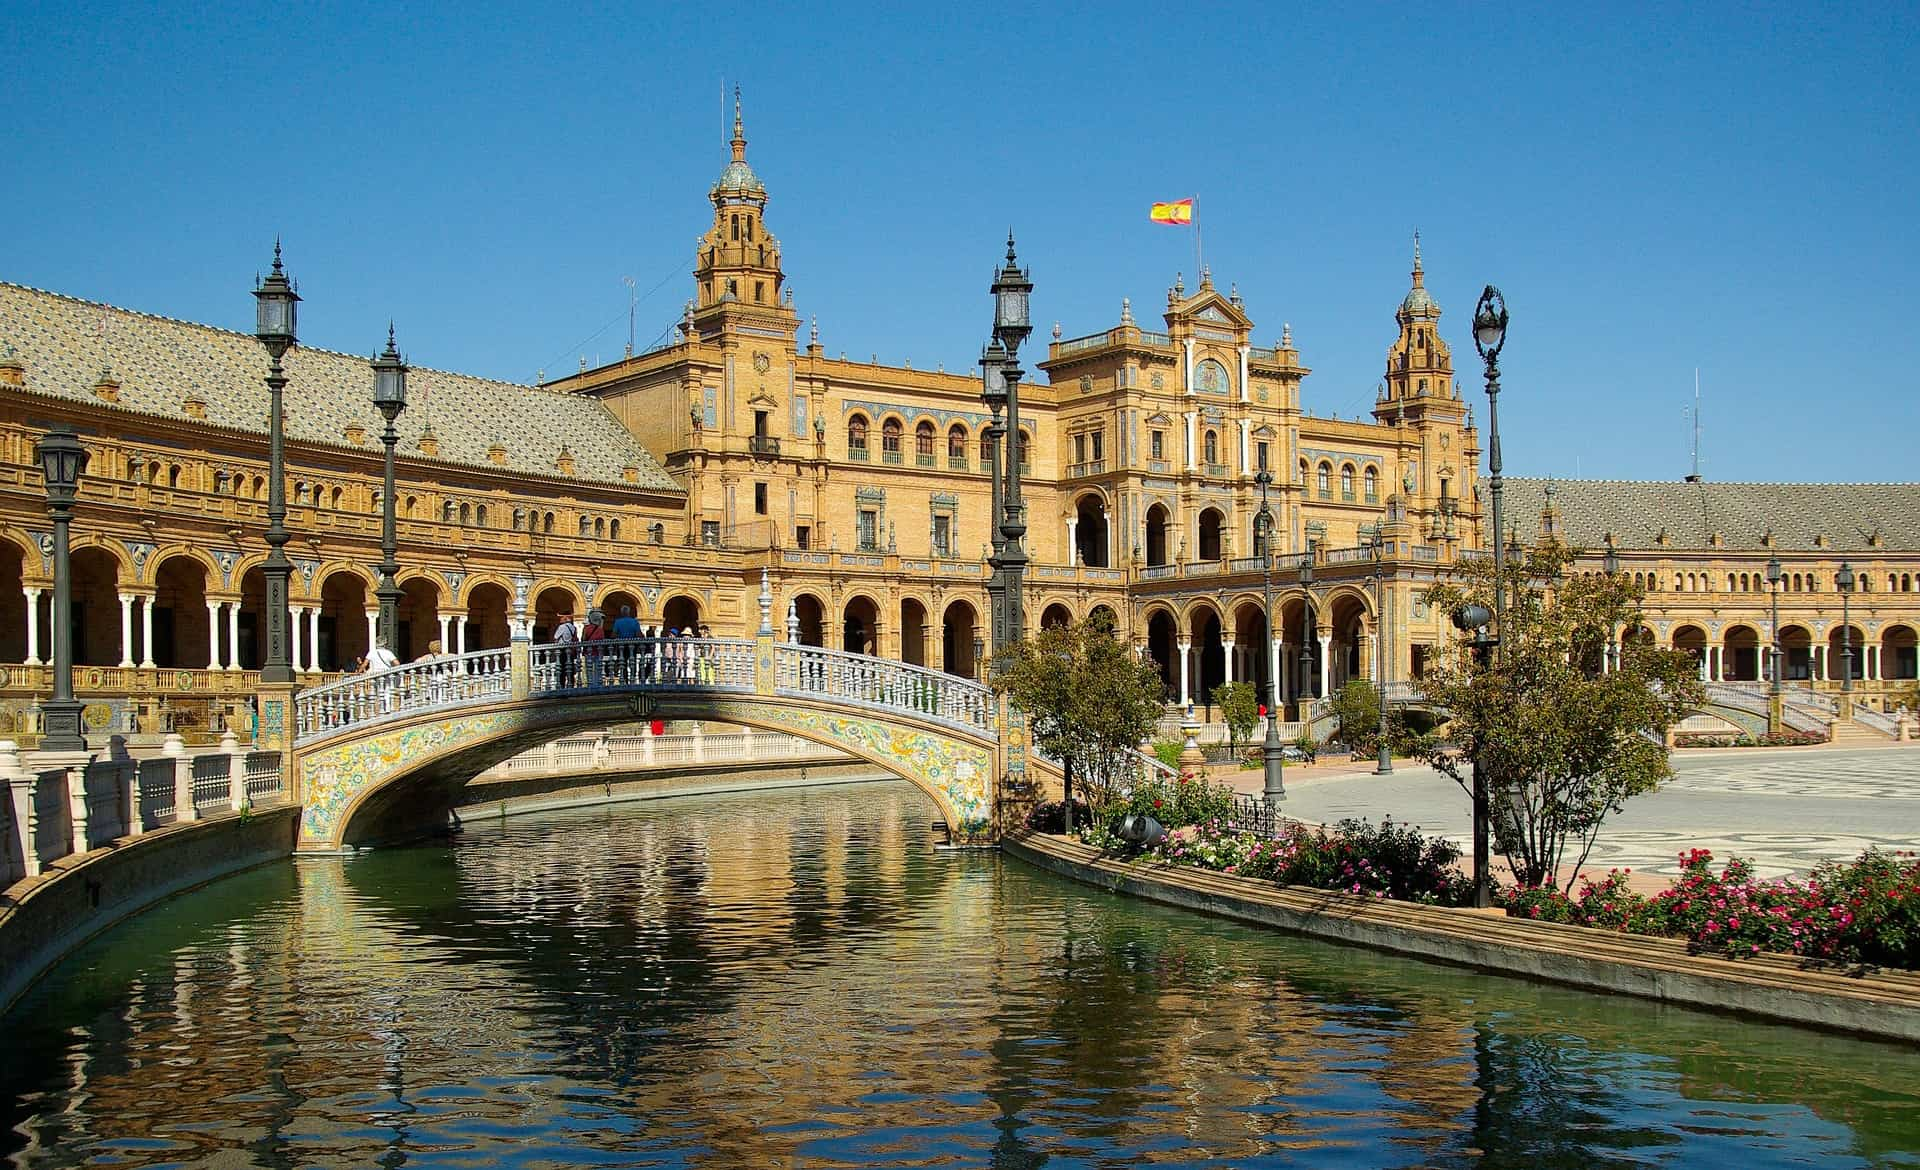 Seville is one of the best reasons to visit the south of Spain. Here, a river and bridge in Plaza de Espana with brick building in background. Spain's flag is flying from the roof.